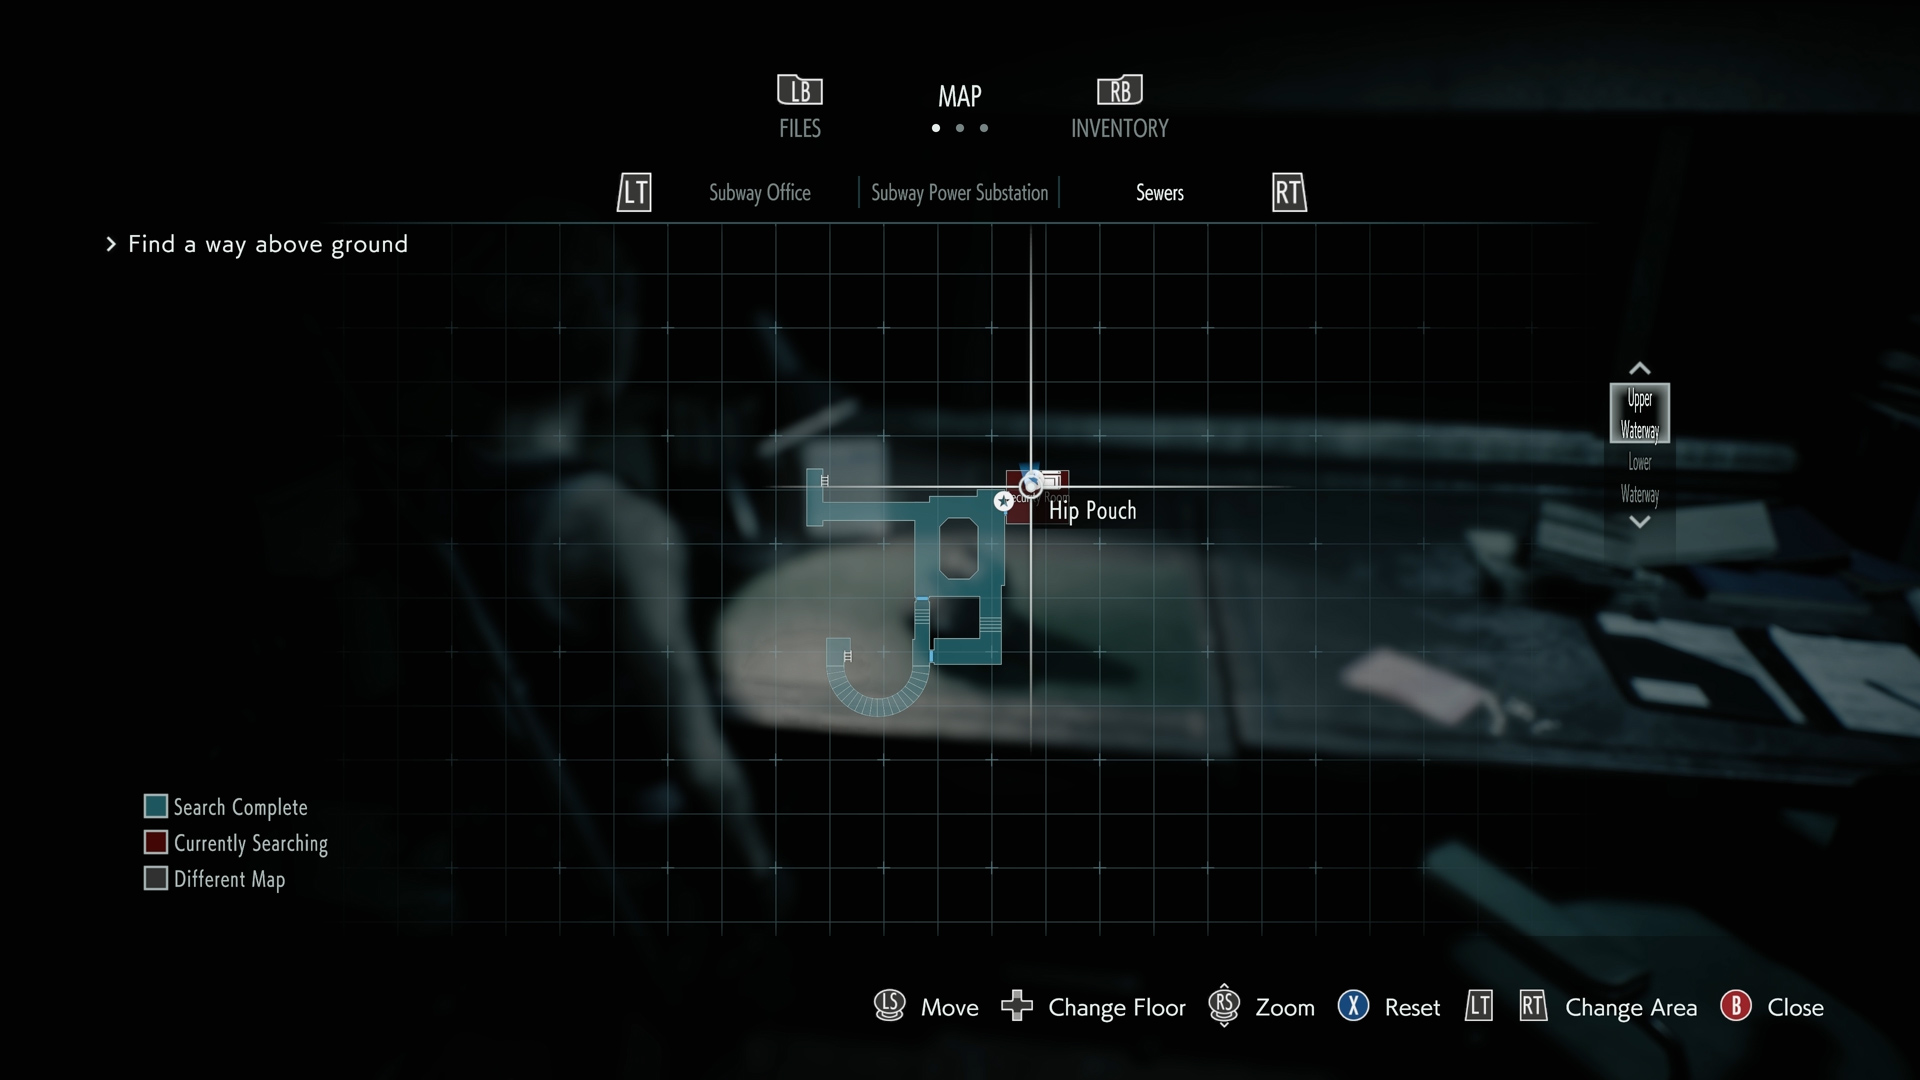 Resident Evil 3 hip pouch 3 location map